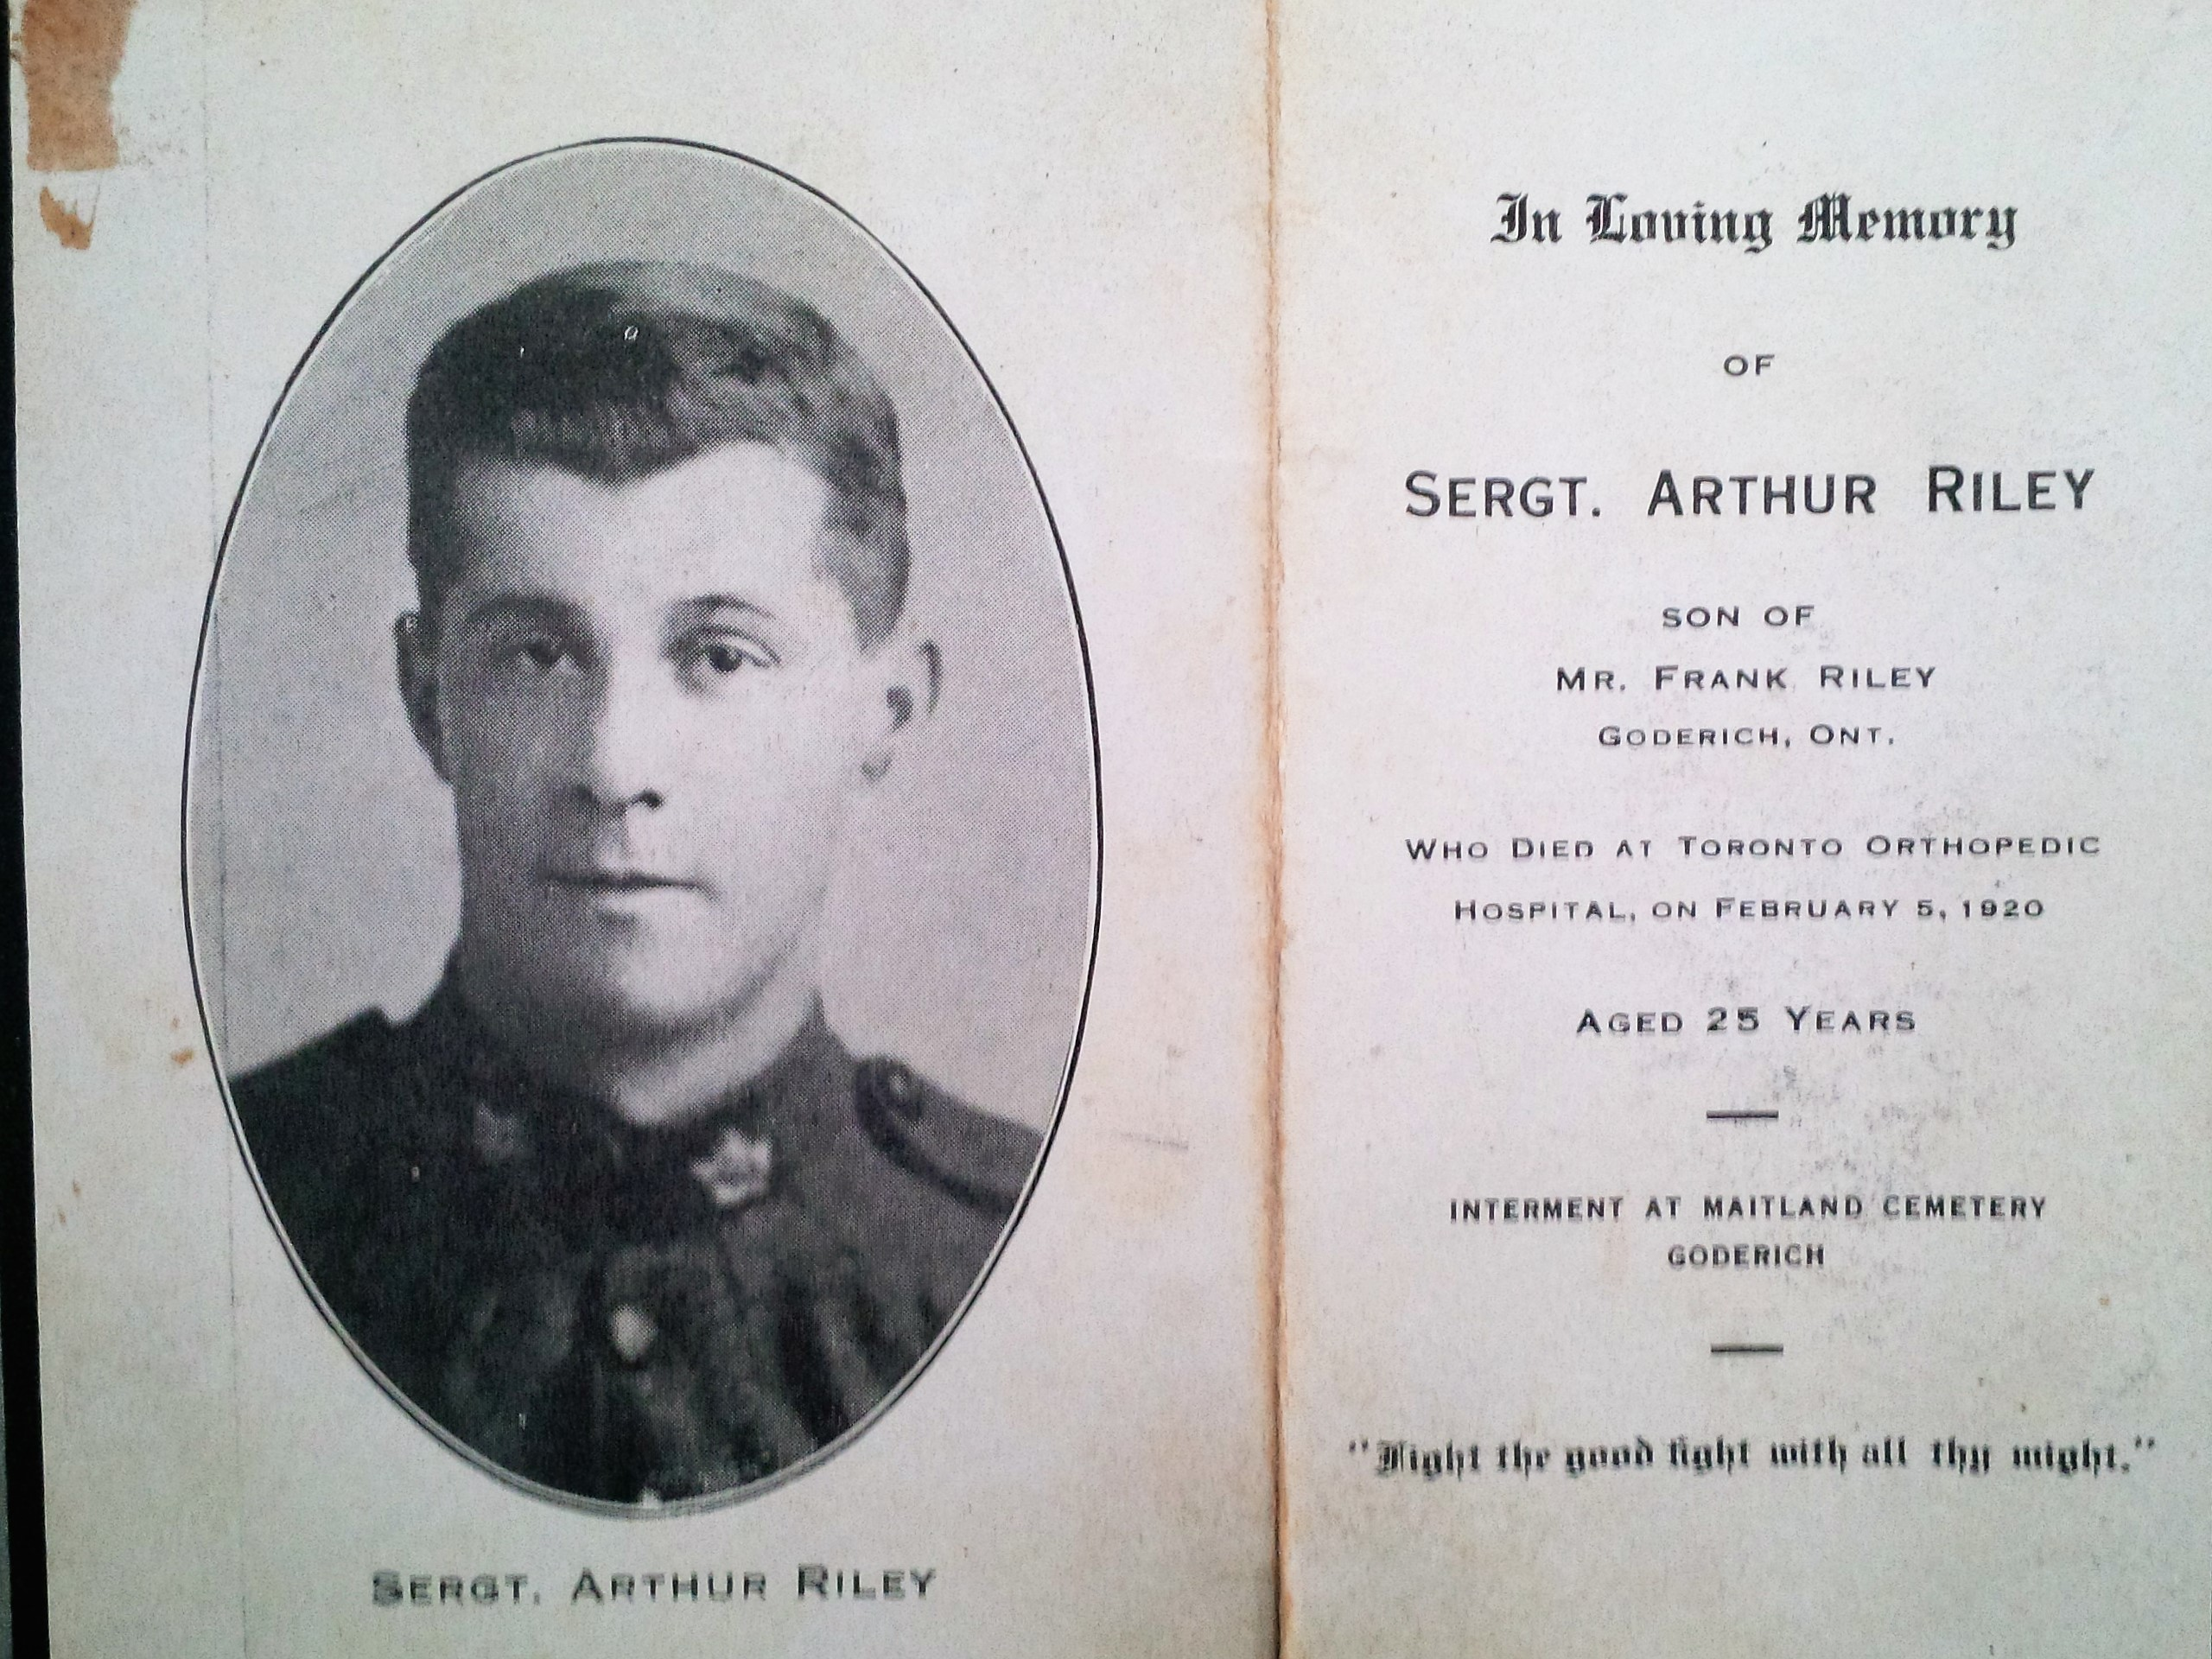 Photo of Arthur Riley